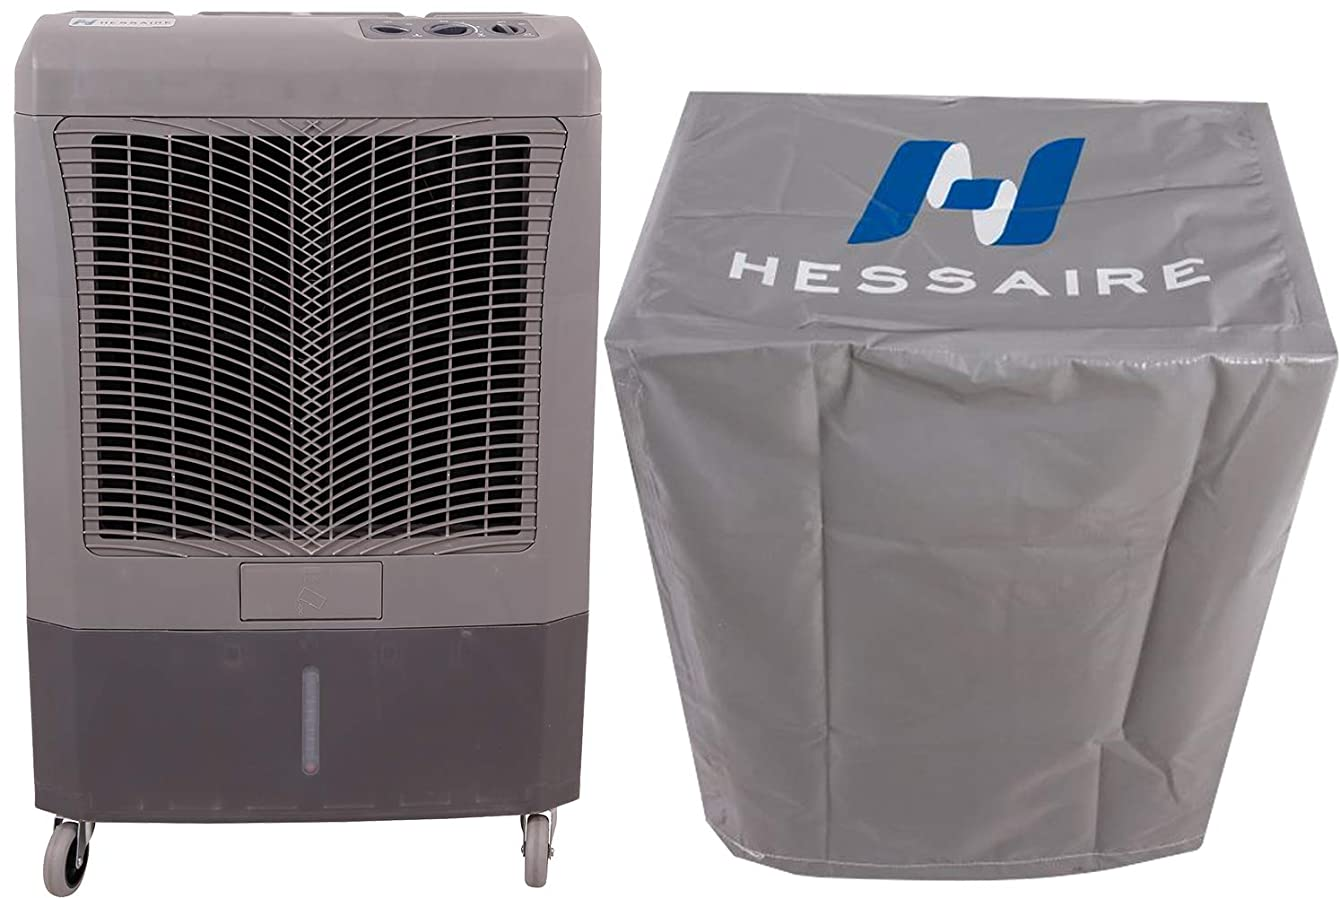 Hessaire MC37M 3,100 CFM Evaporative Cooler with Cooler Cover